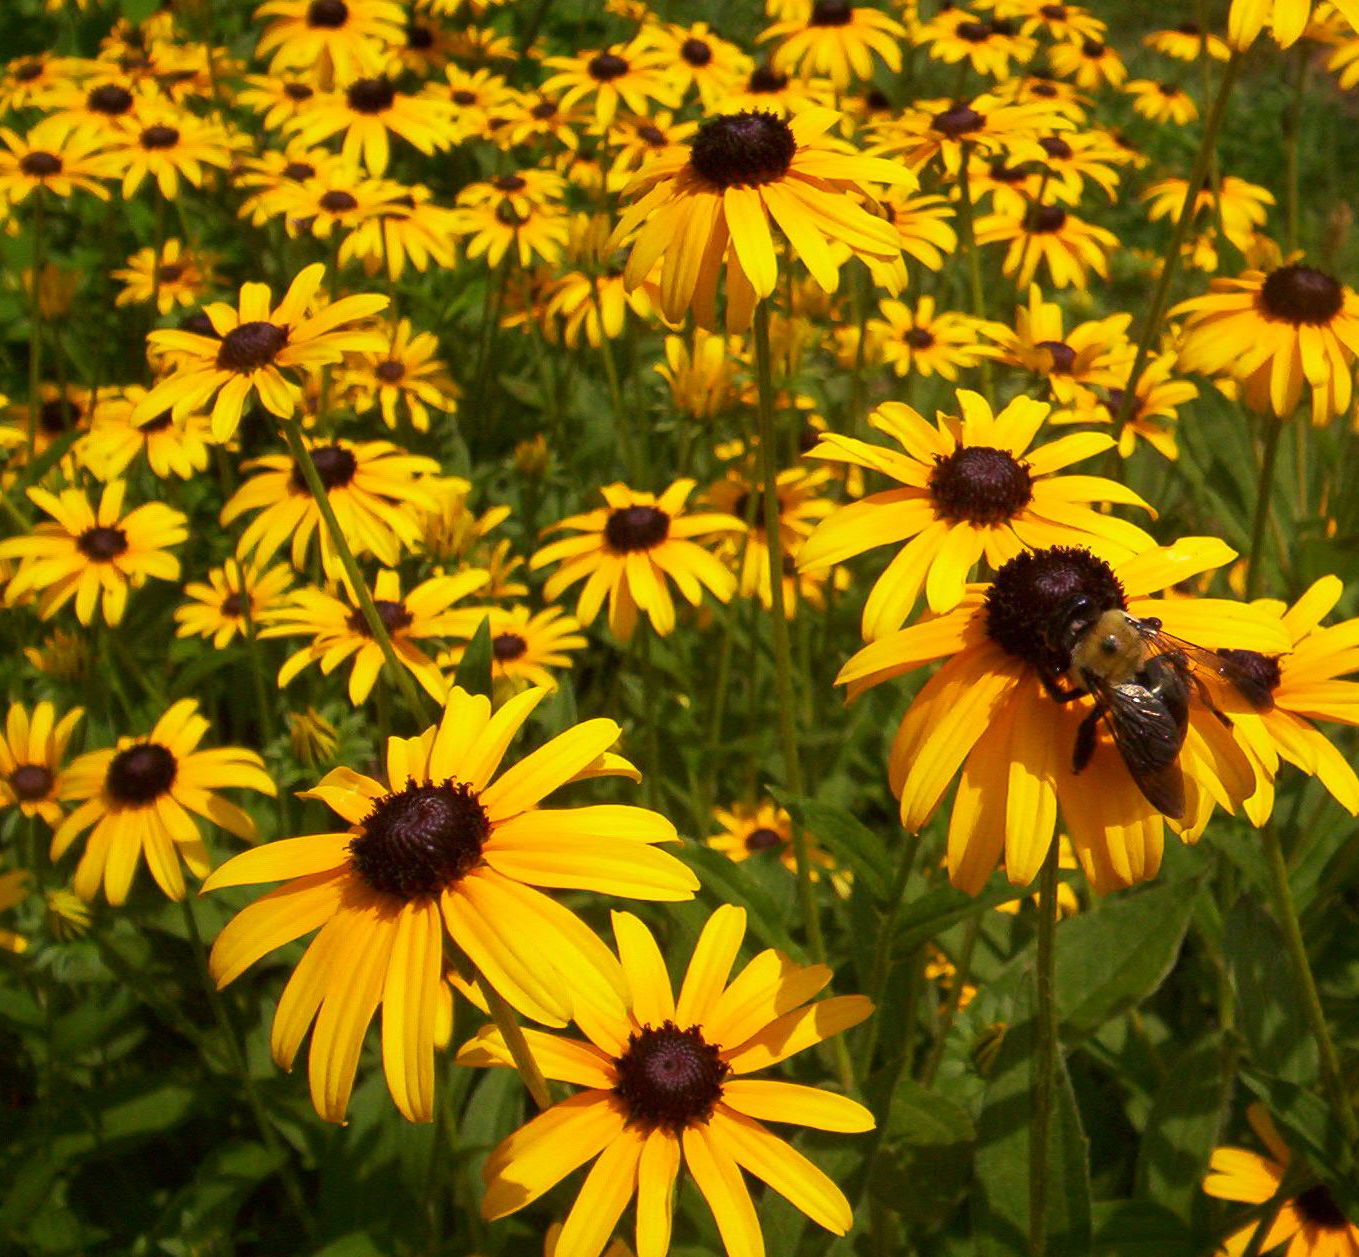 Black eyed susan rudbeckia hillermann nursery florist black eyed susan plants are valued as long blooming perennials putting out numerous flowers non stop for most of the summer and into early autumn mightylinksfo